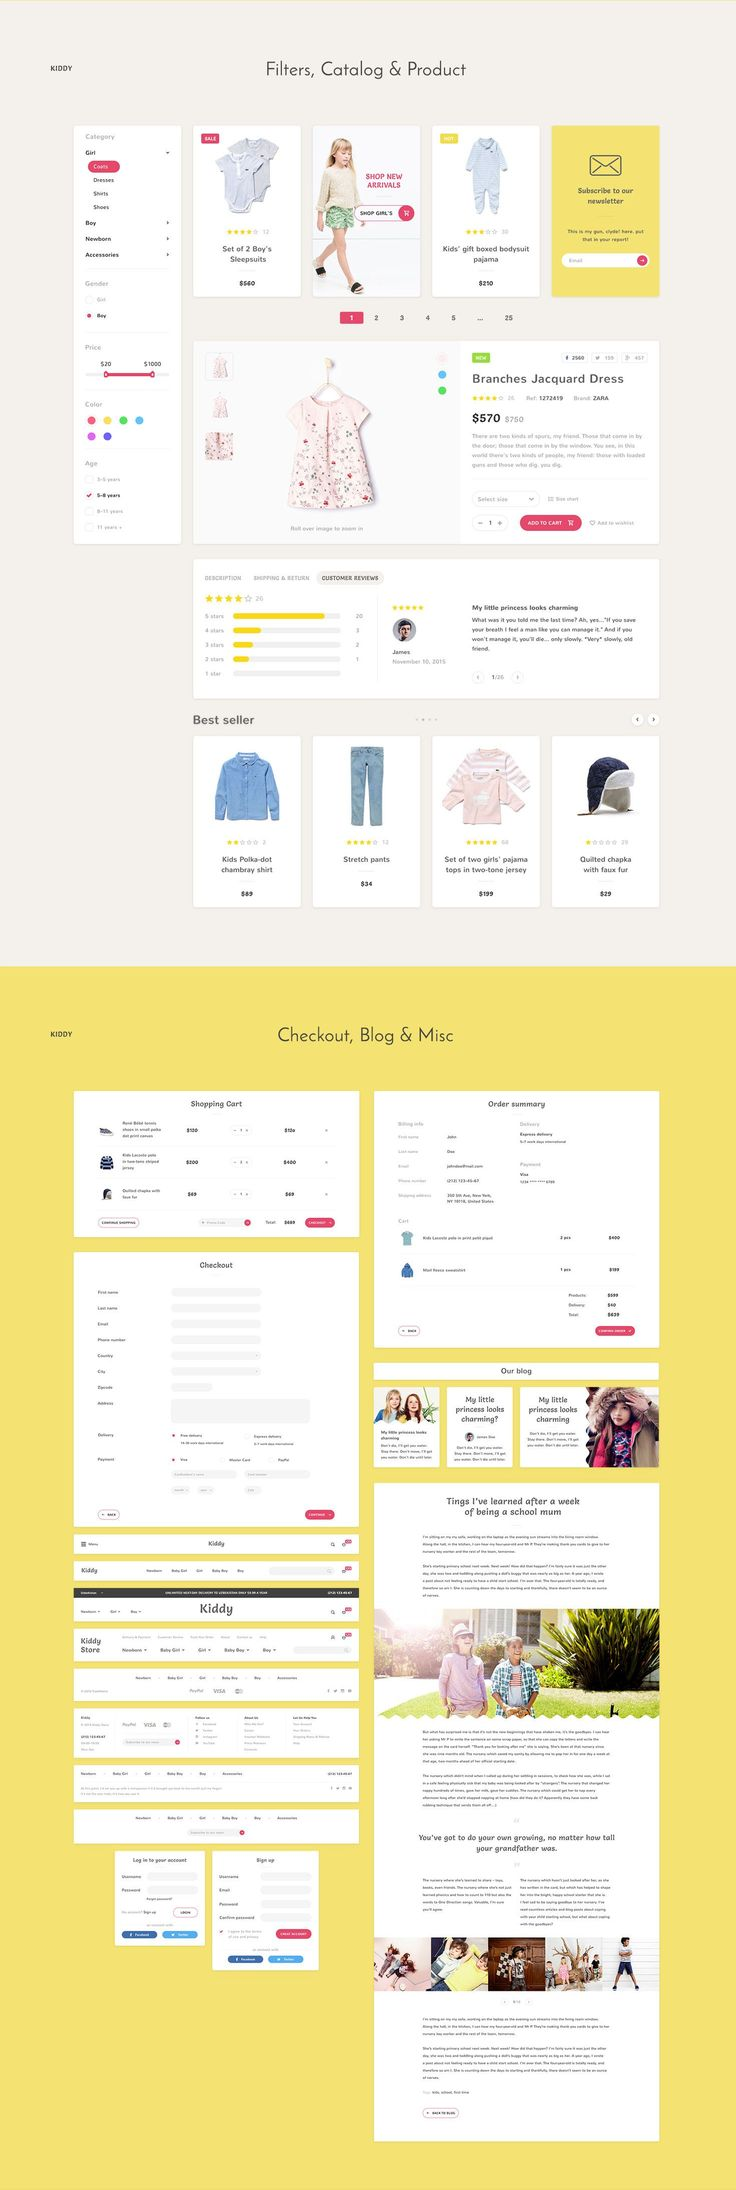 kids store website design | visual hierarchy